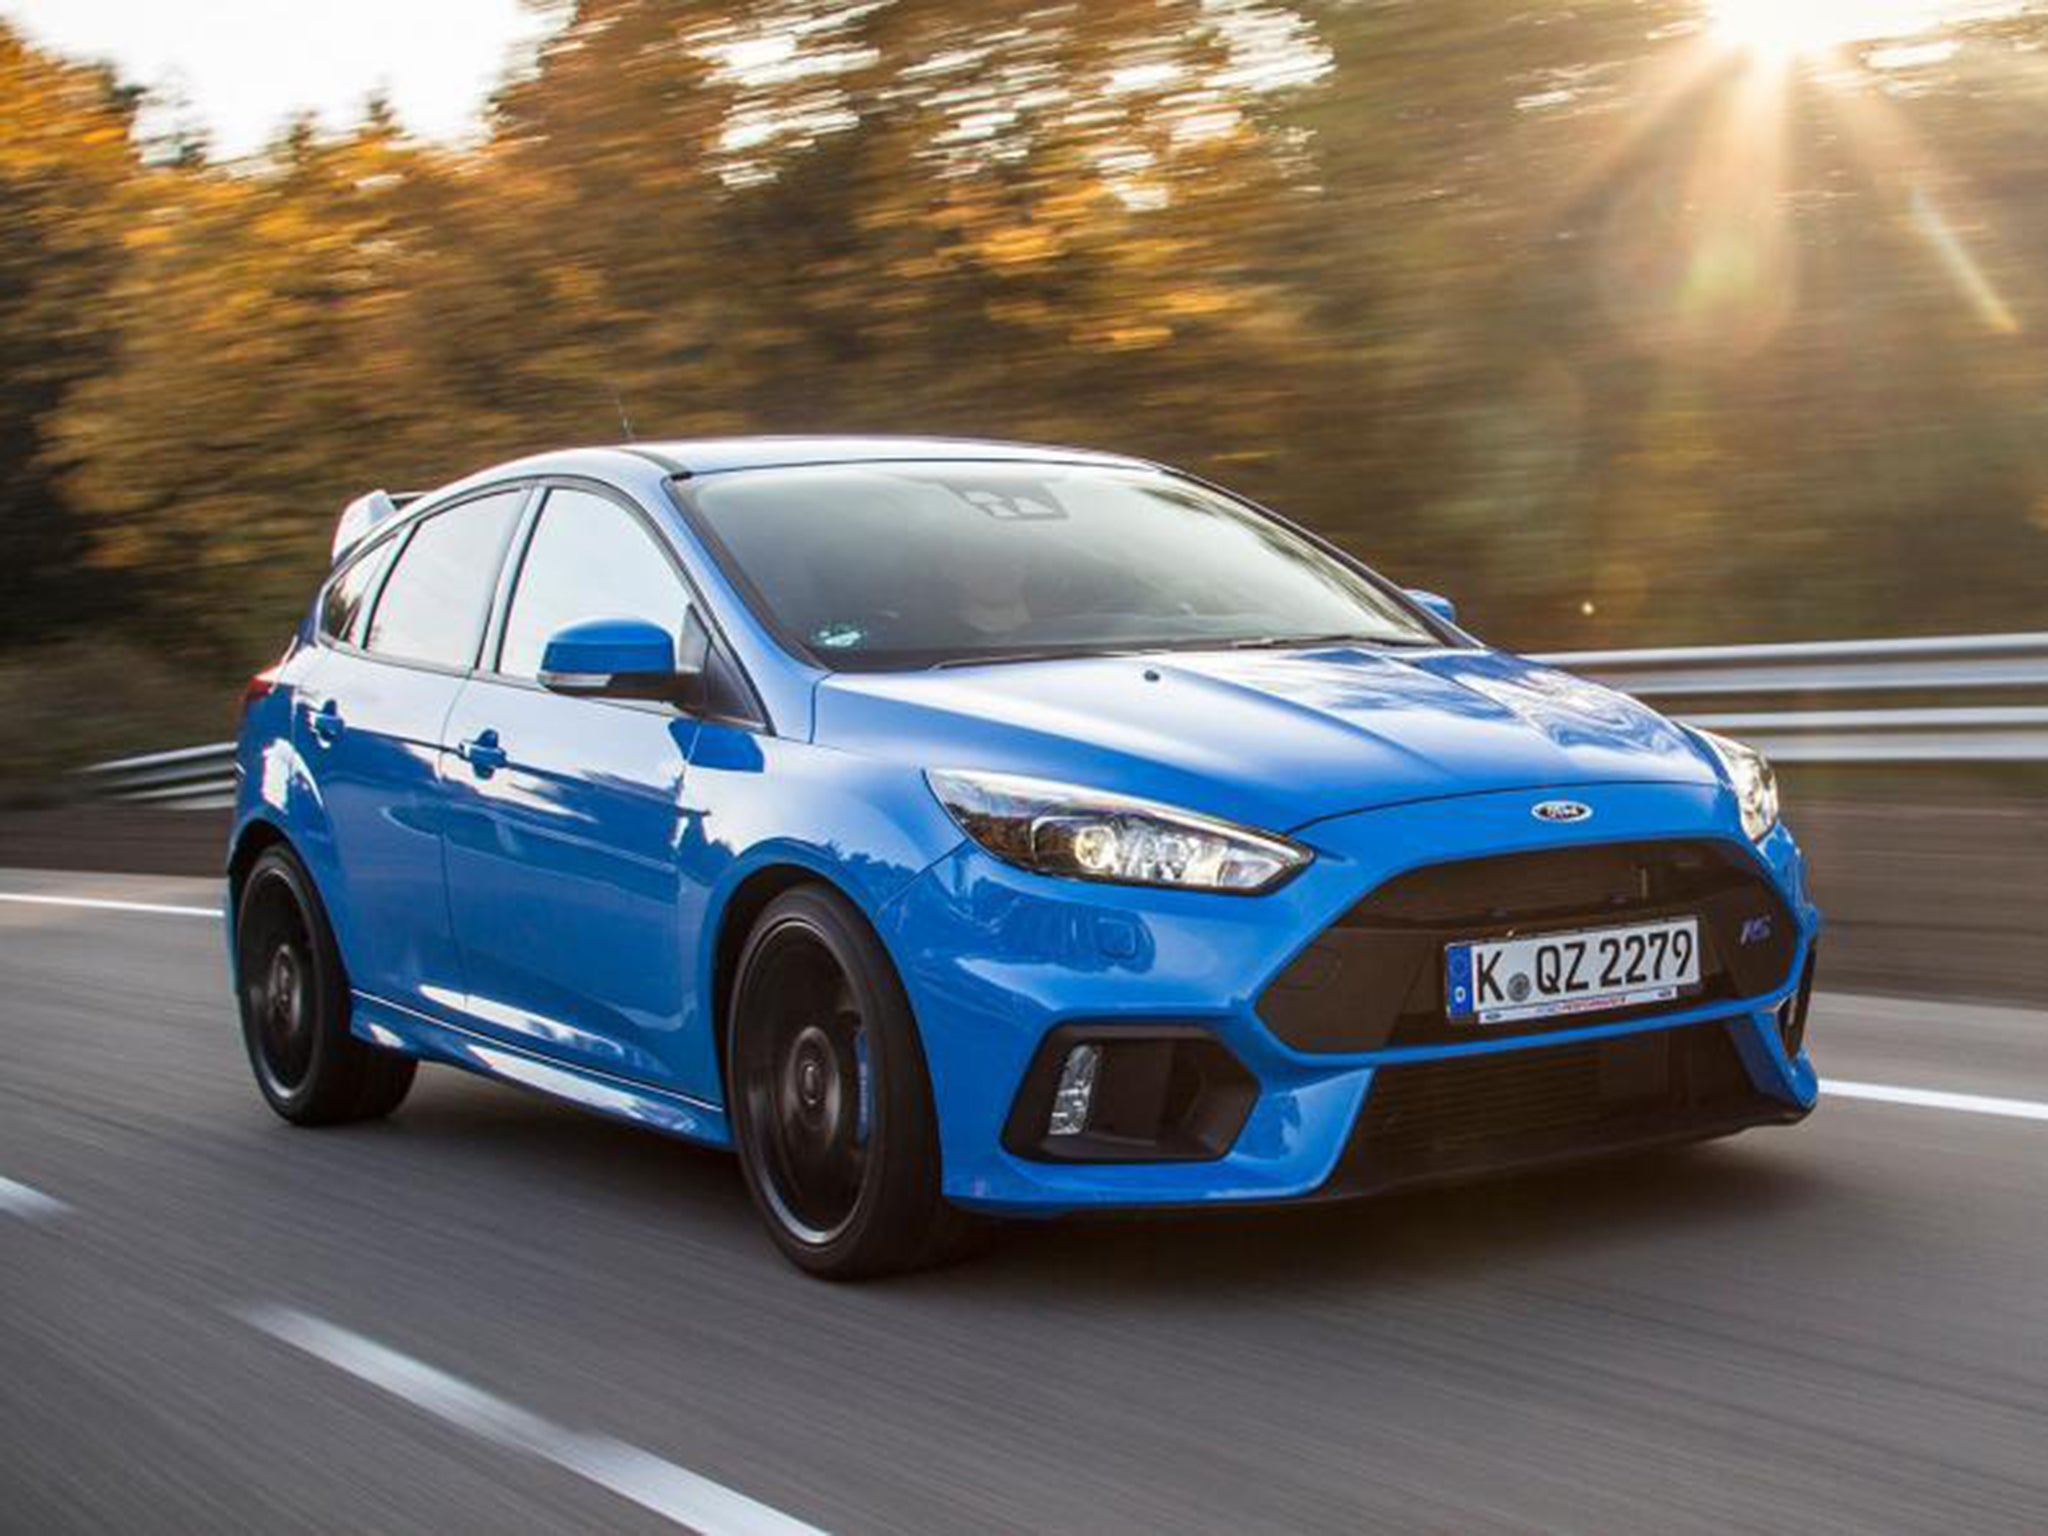 2016 Ford Focus Rs Car Review This Gives You Enormous